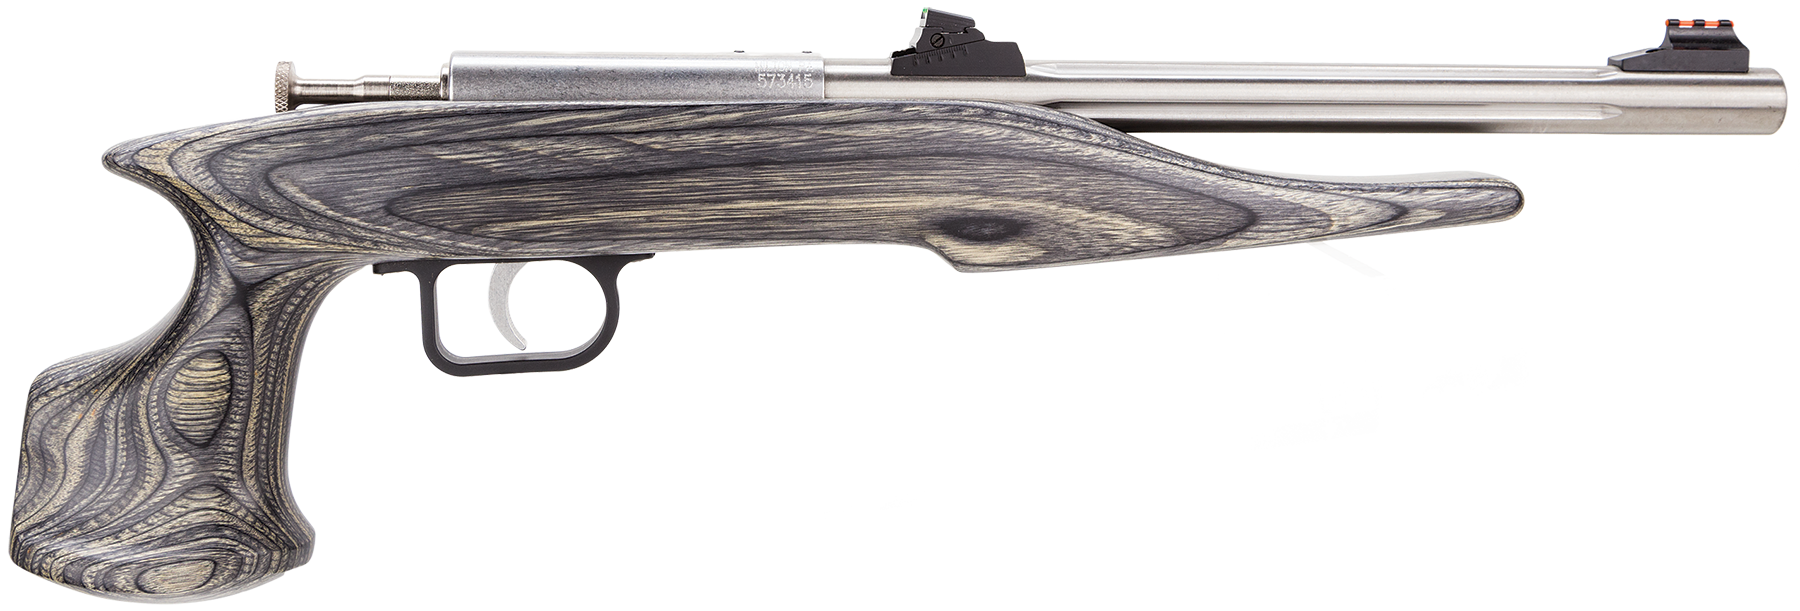 Crickett 41103 Chipmunk Hunter 22 WMR 10.5